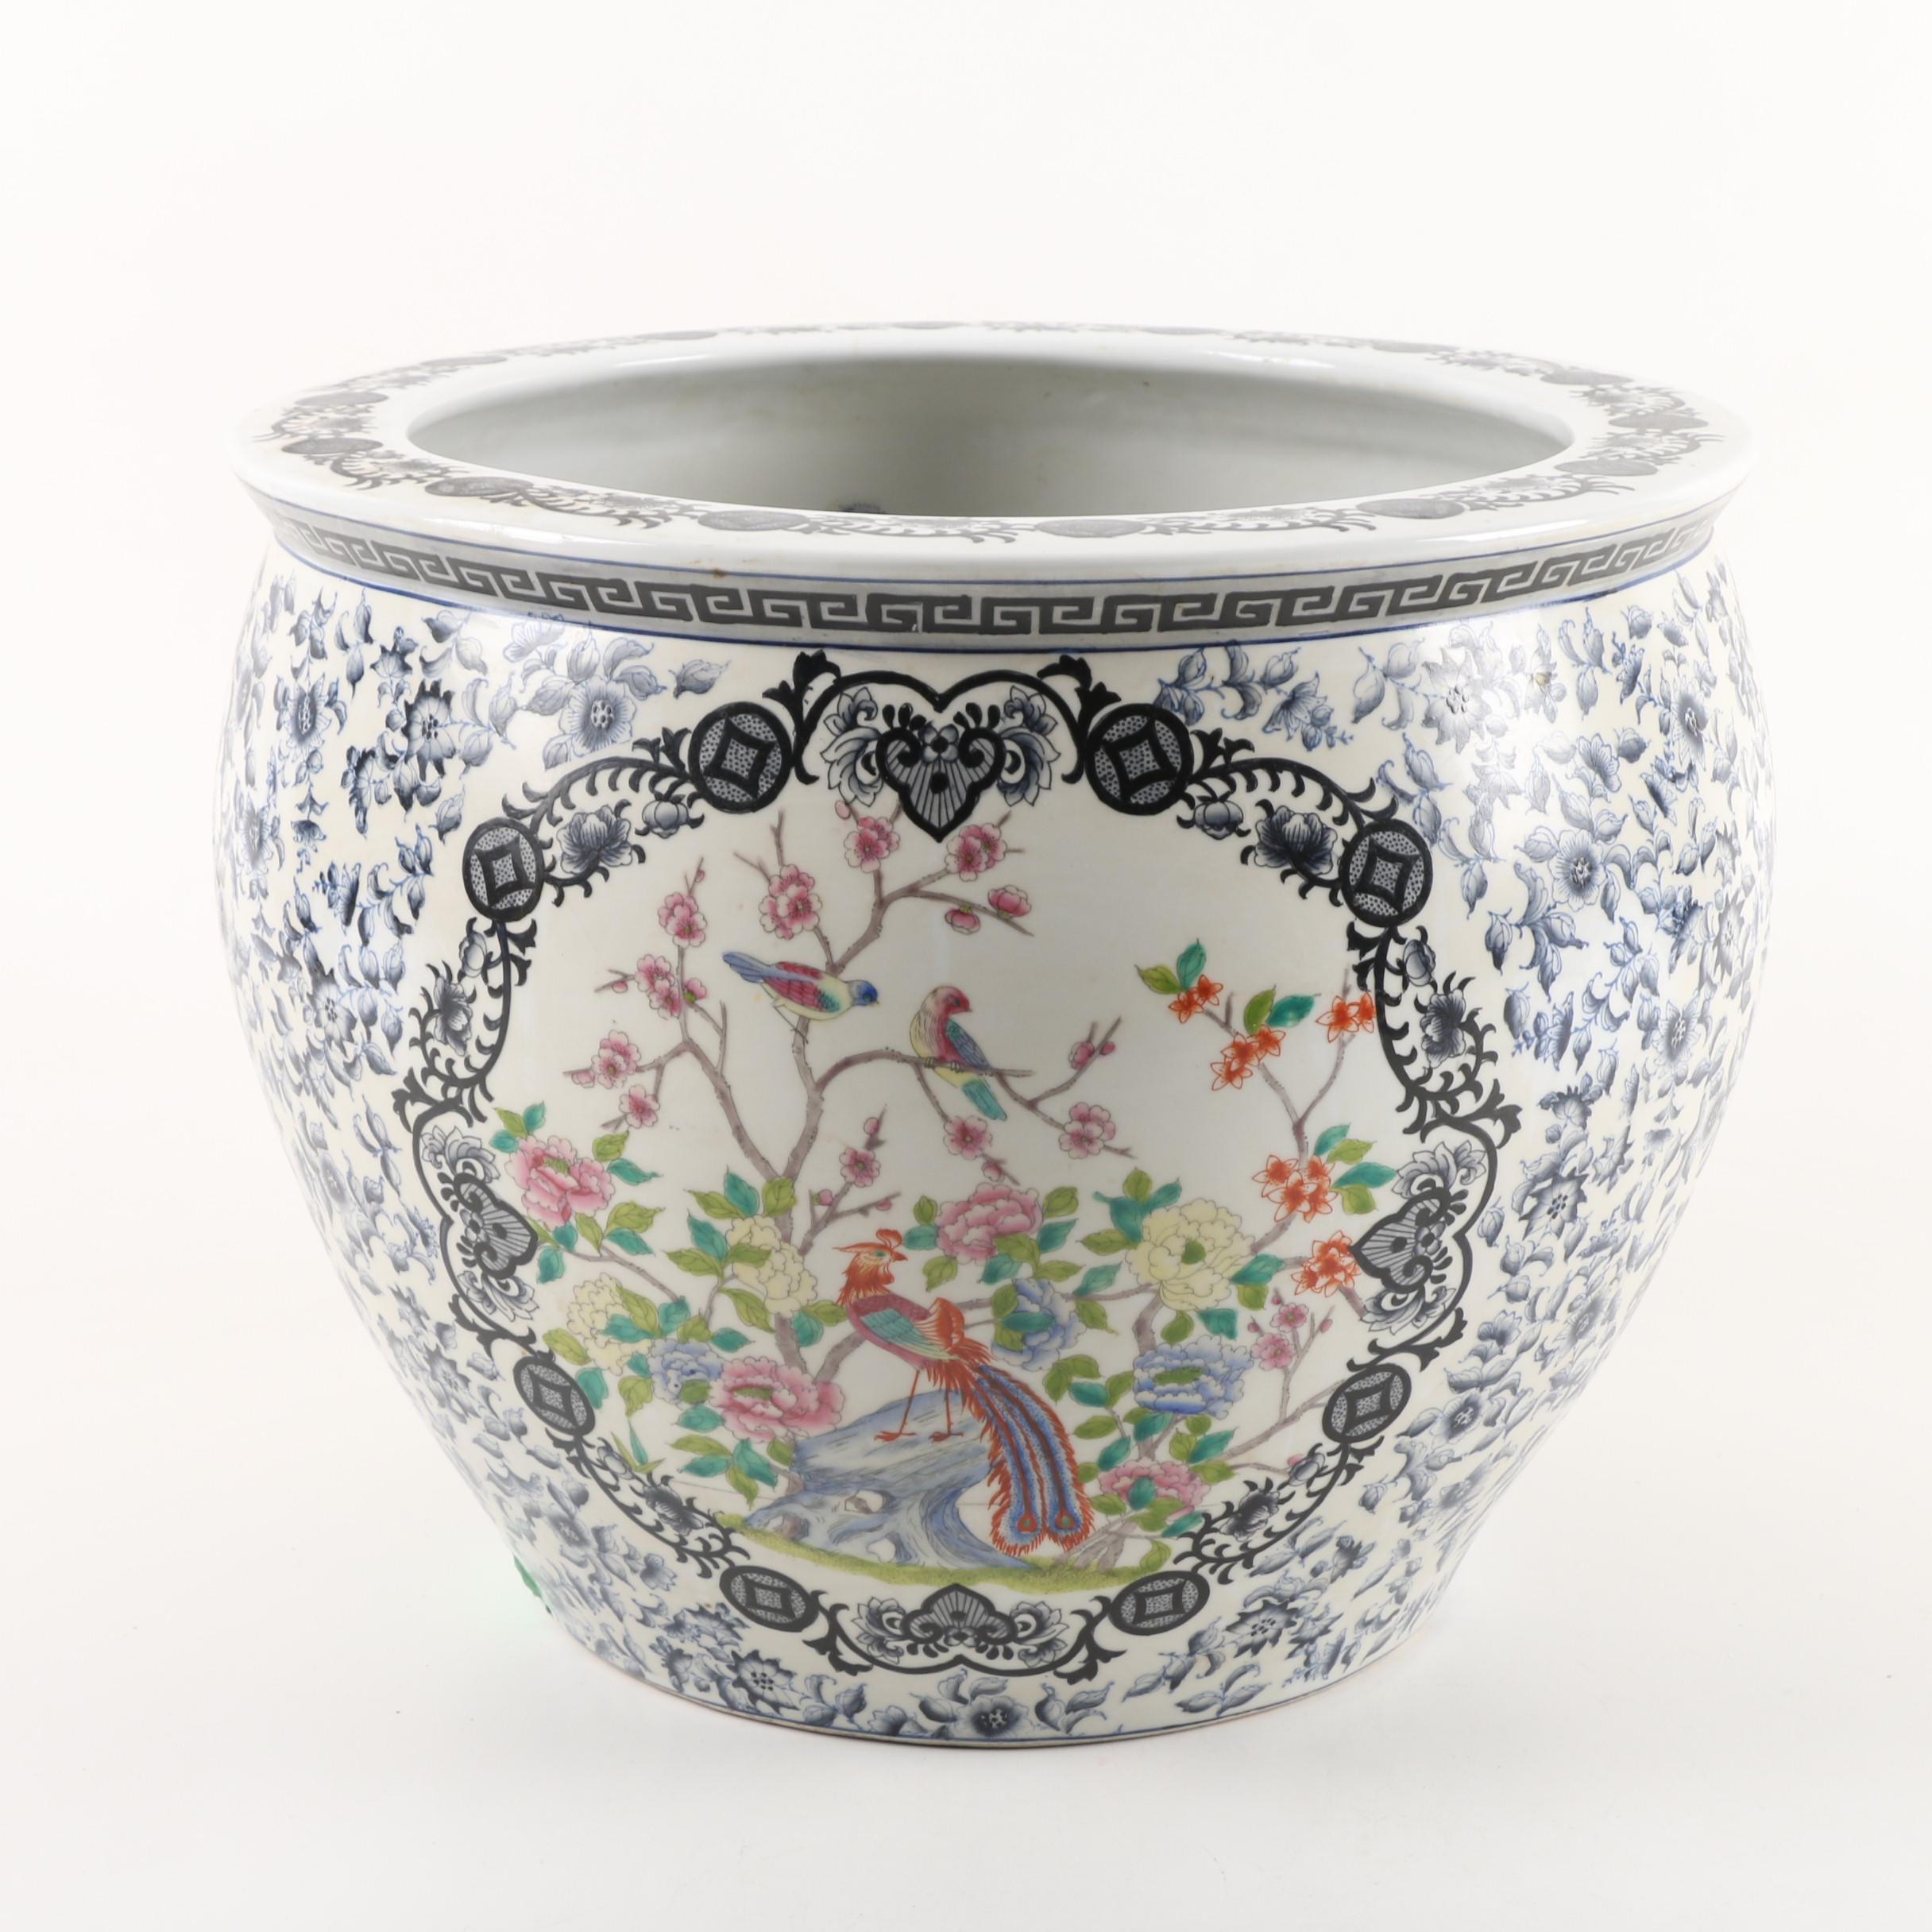 Contemporary Chinese Fishbowl Planter